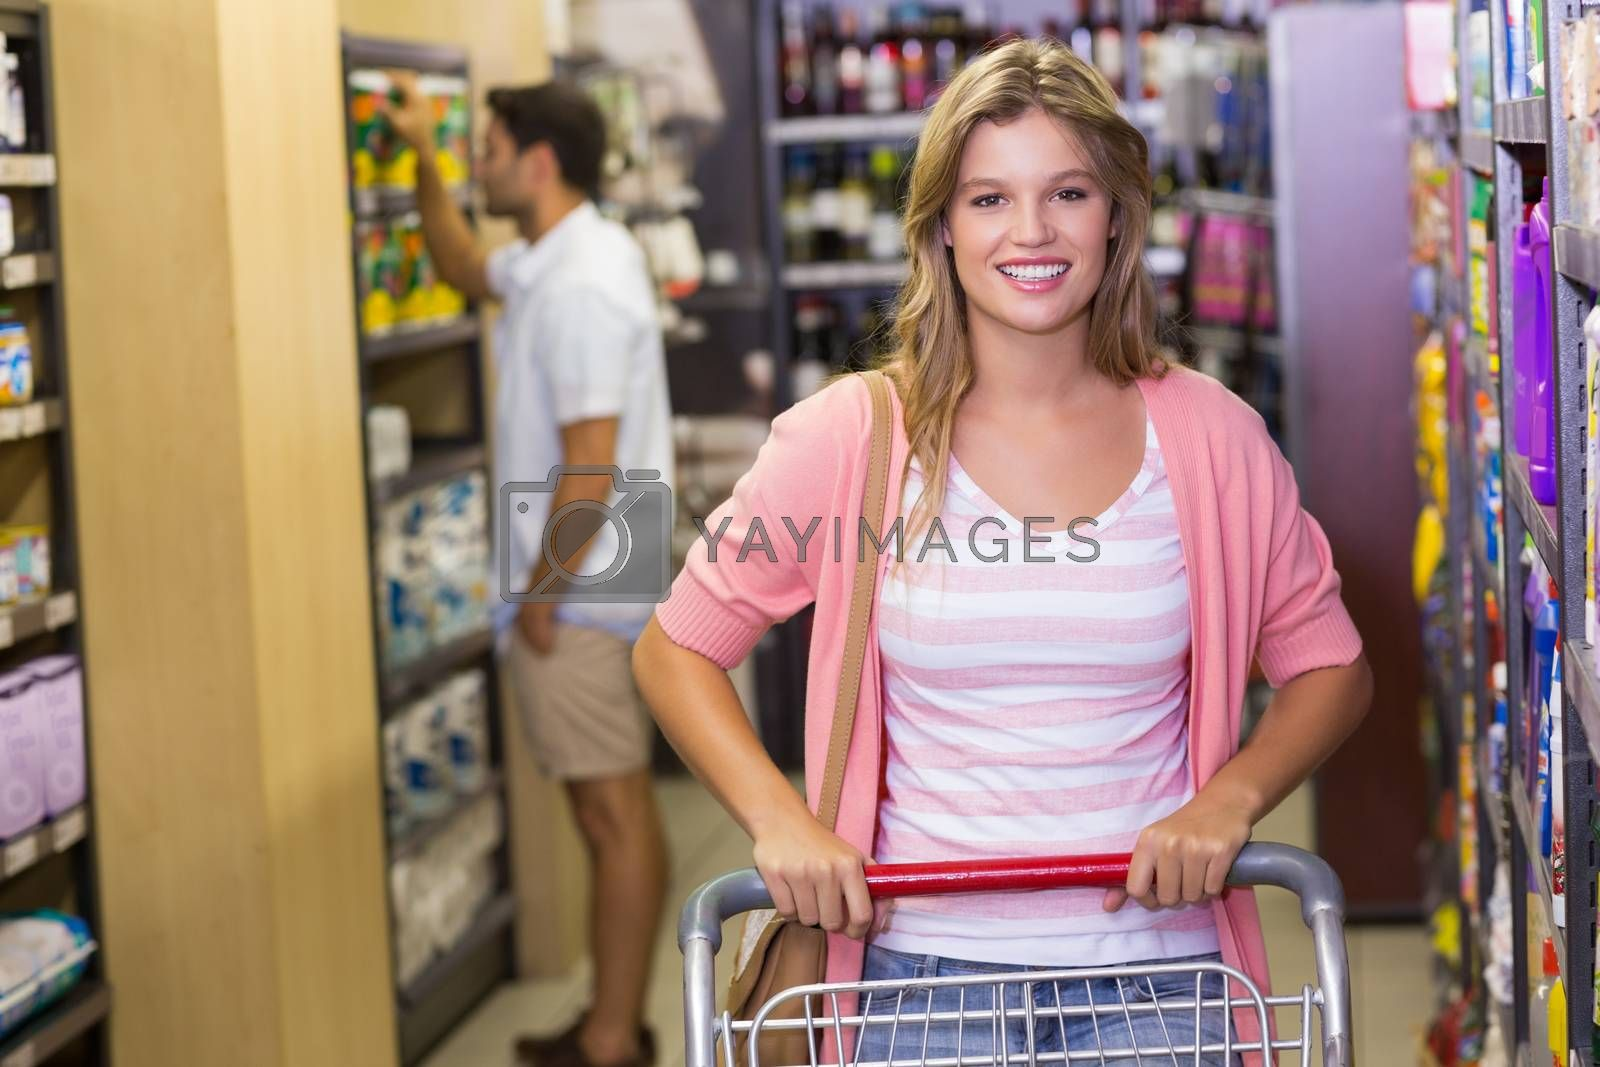 Royalty free image of Portrait of smiling blonde woman buying products by Wavebreakmedia